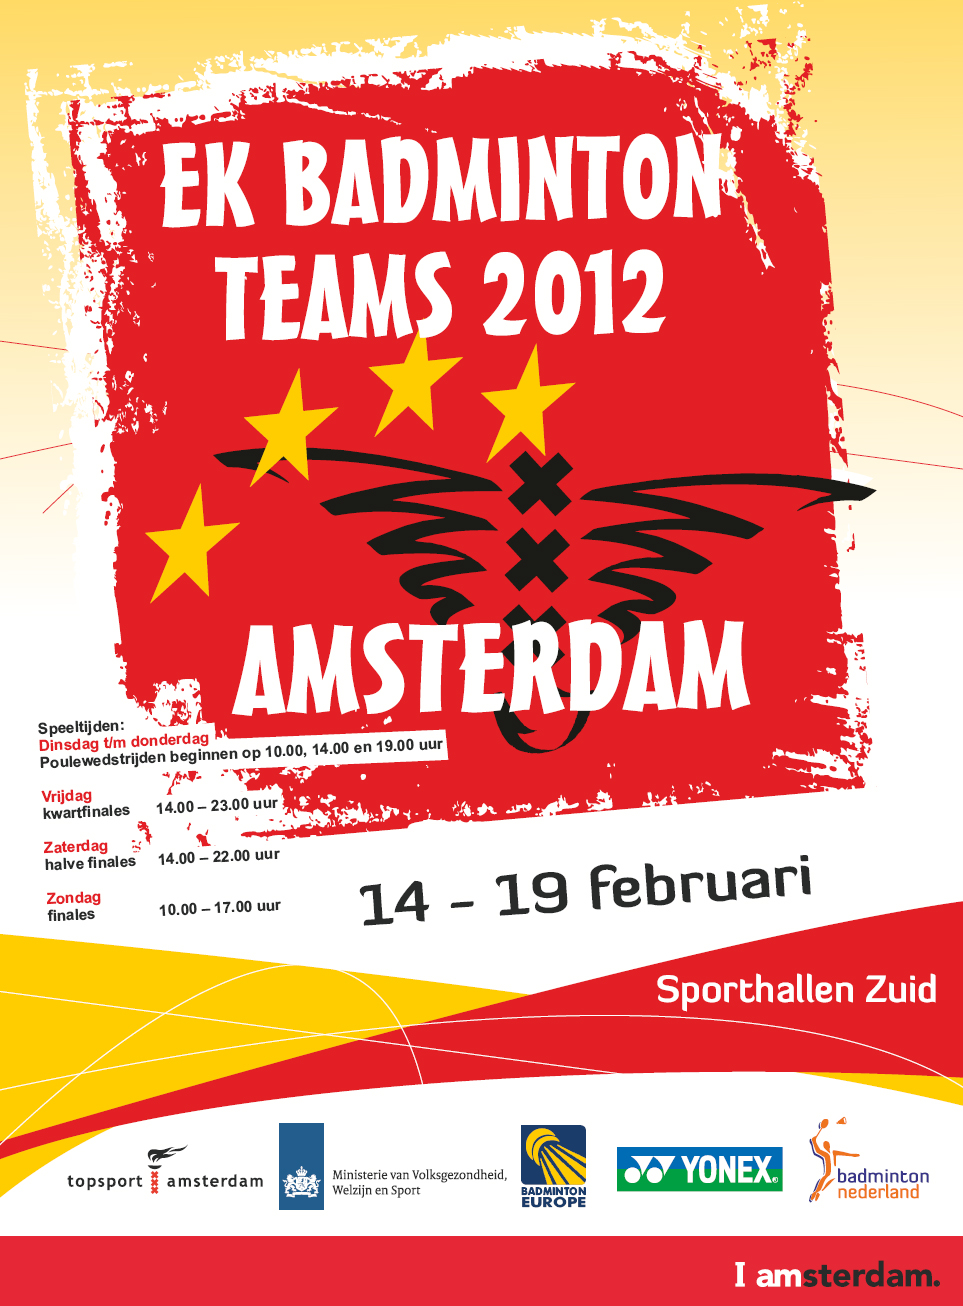 Loting EK Badminton Teams 2012 gunstig voor Nederland